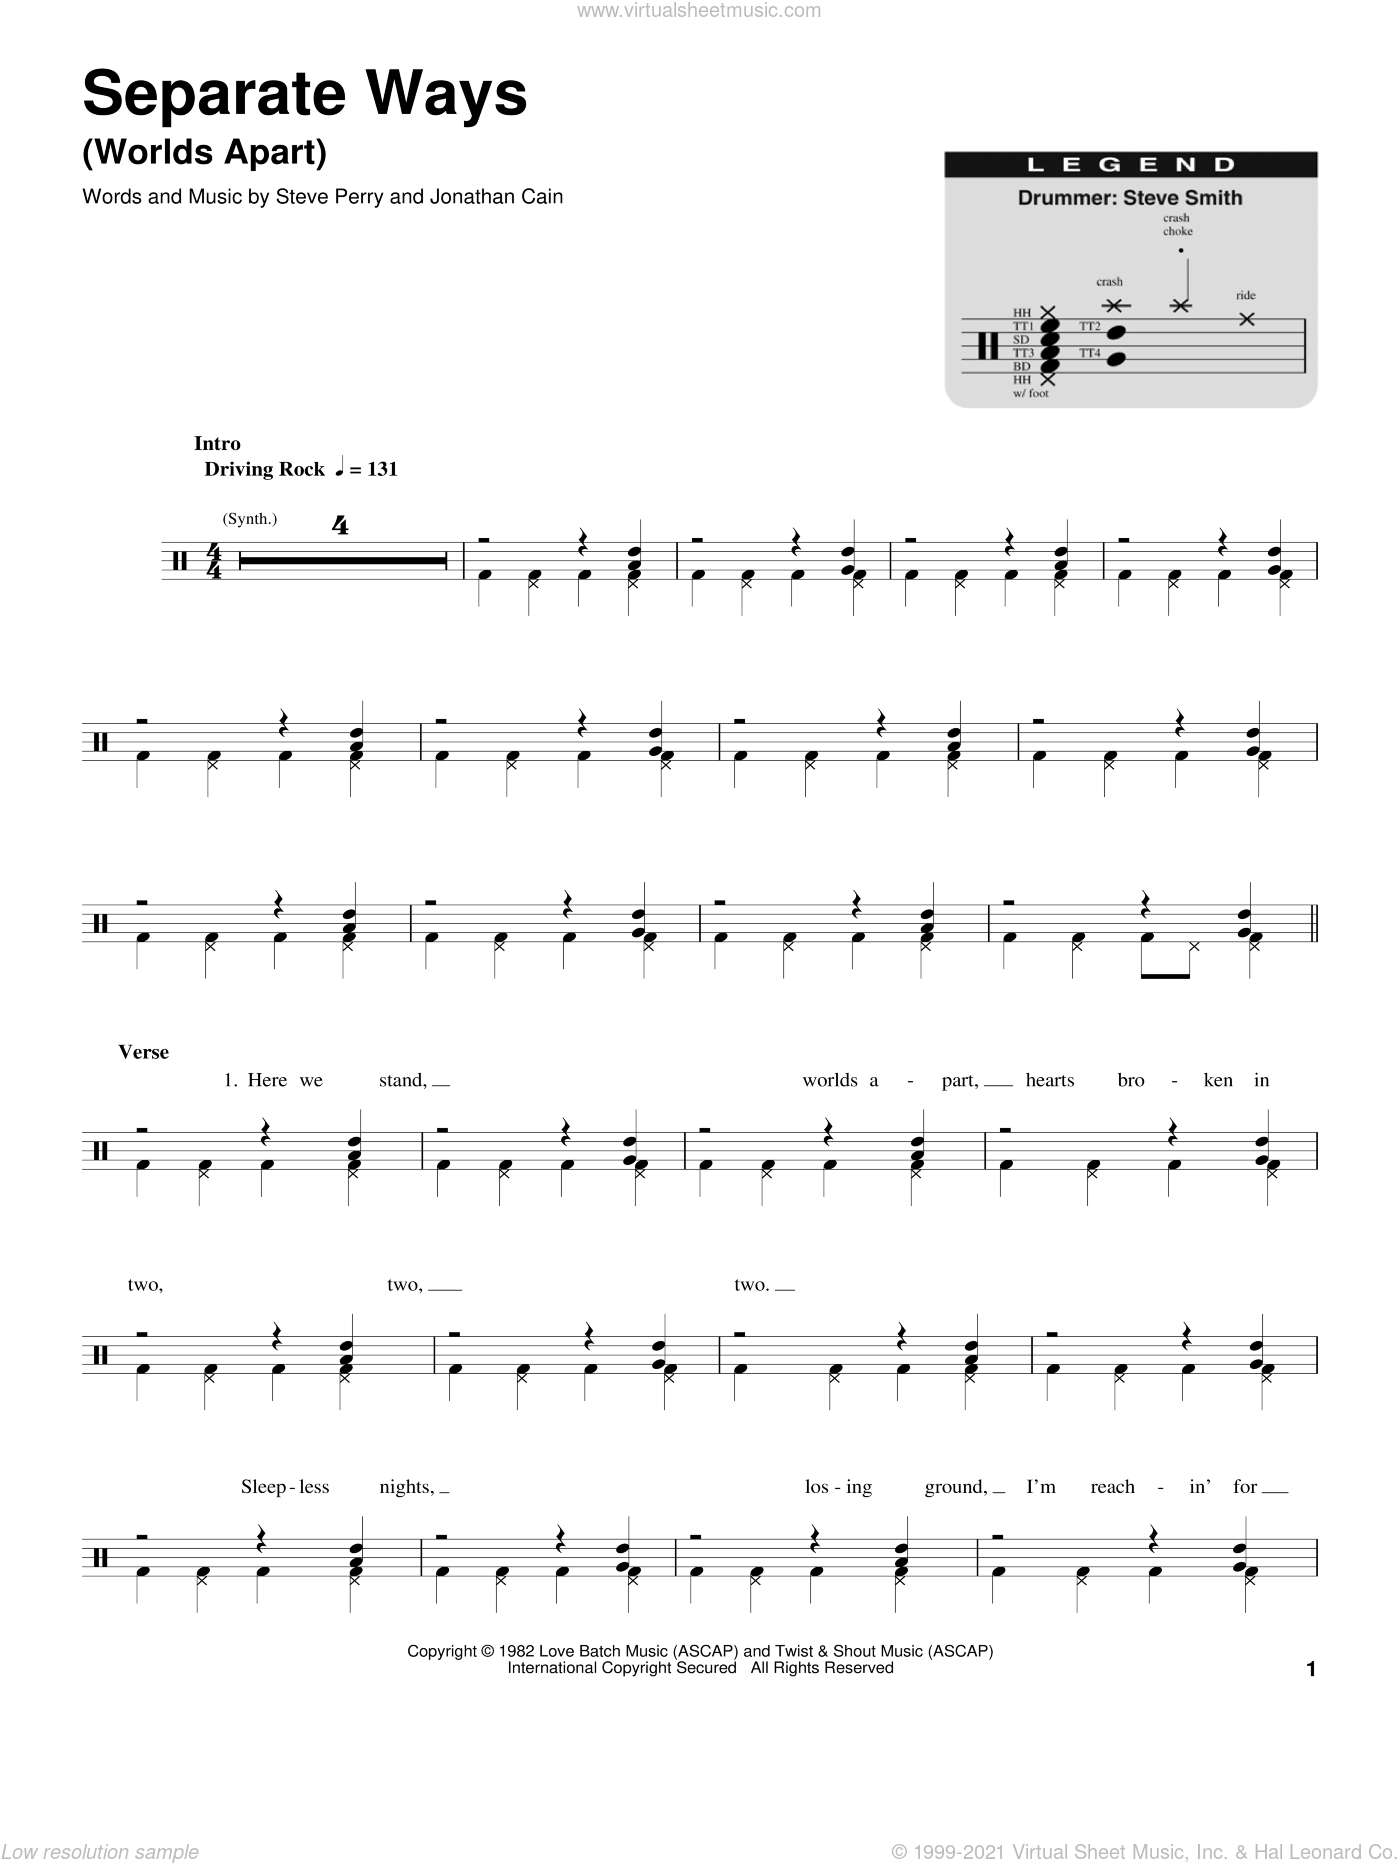 Separate Ways (Worlds Apart) sheet music for drums by Steve Perry, Journey and Jonathan Cain. Score Image Preview.